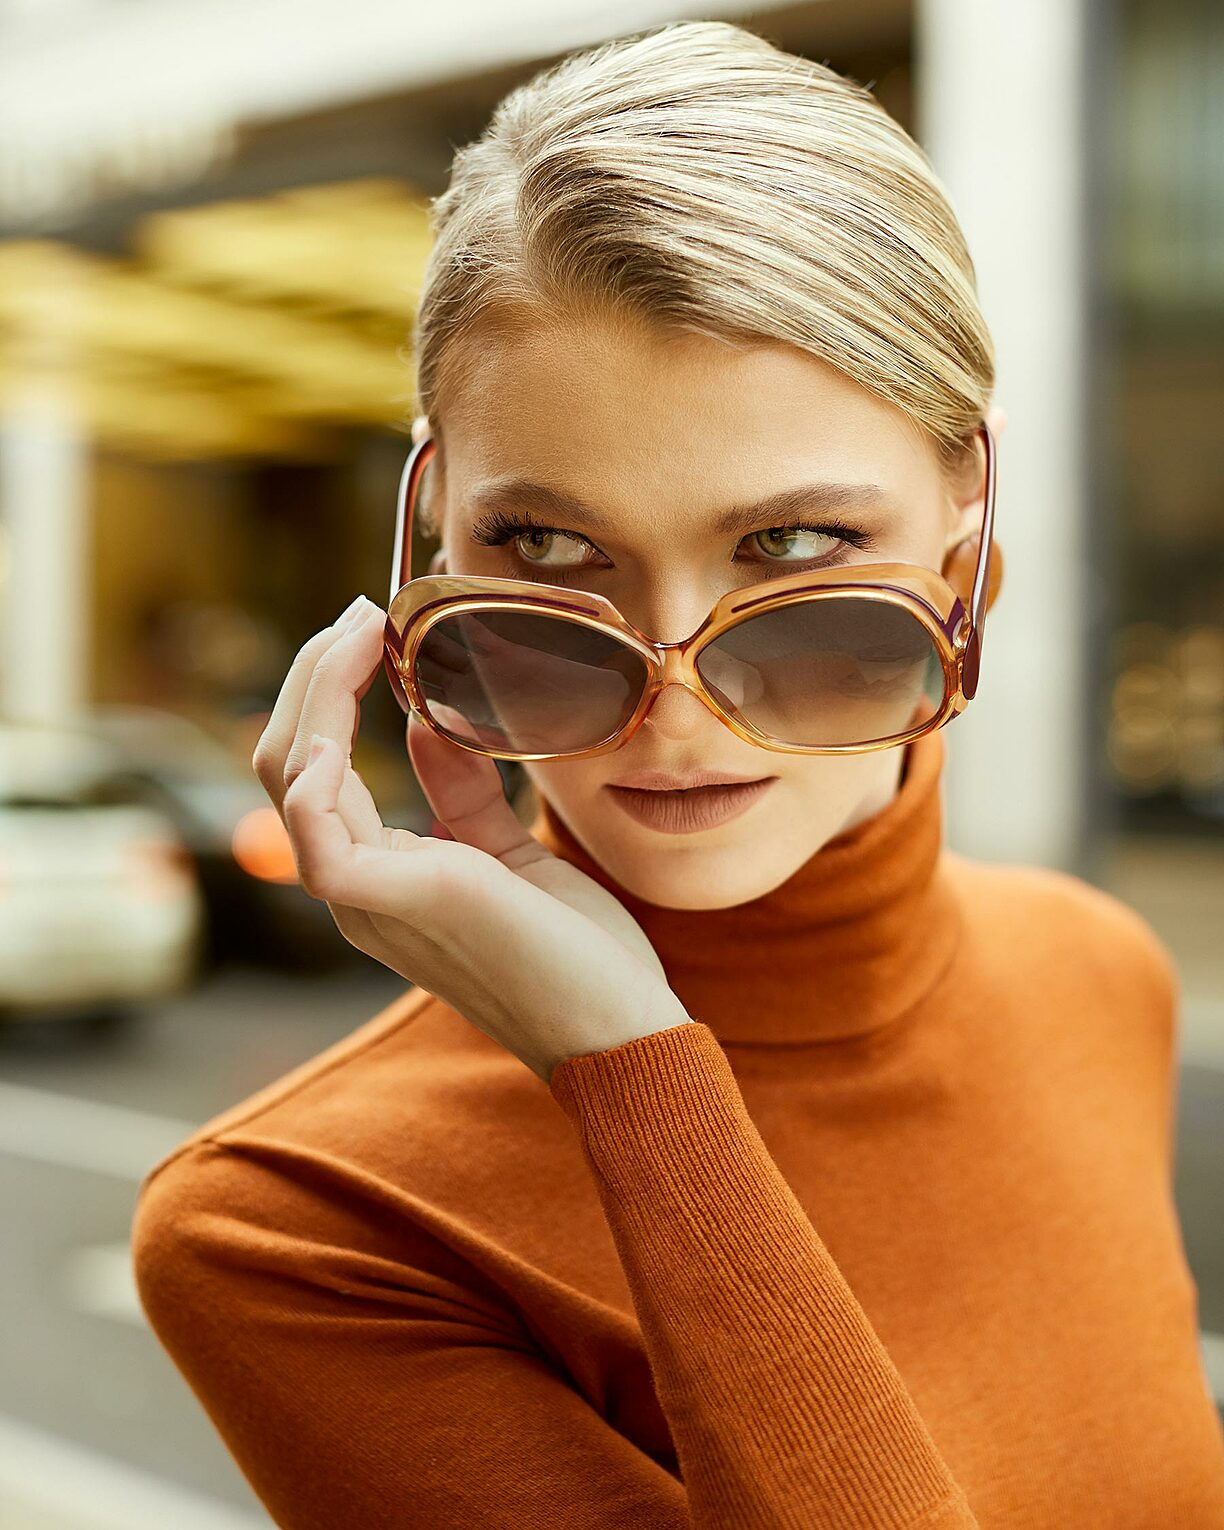 A blond hair model with orange big sunglasses and a orange pullover with a turtleneck in a outdoor location in front of a hotel with yellow lights